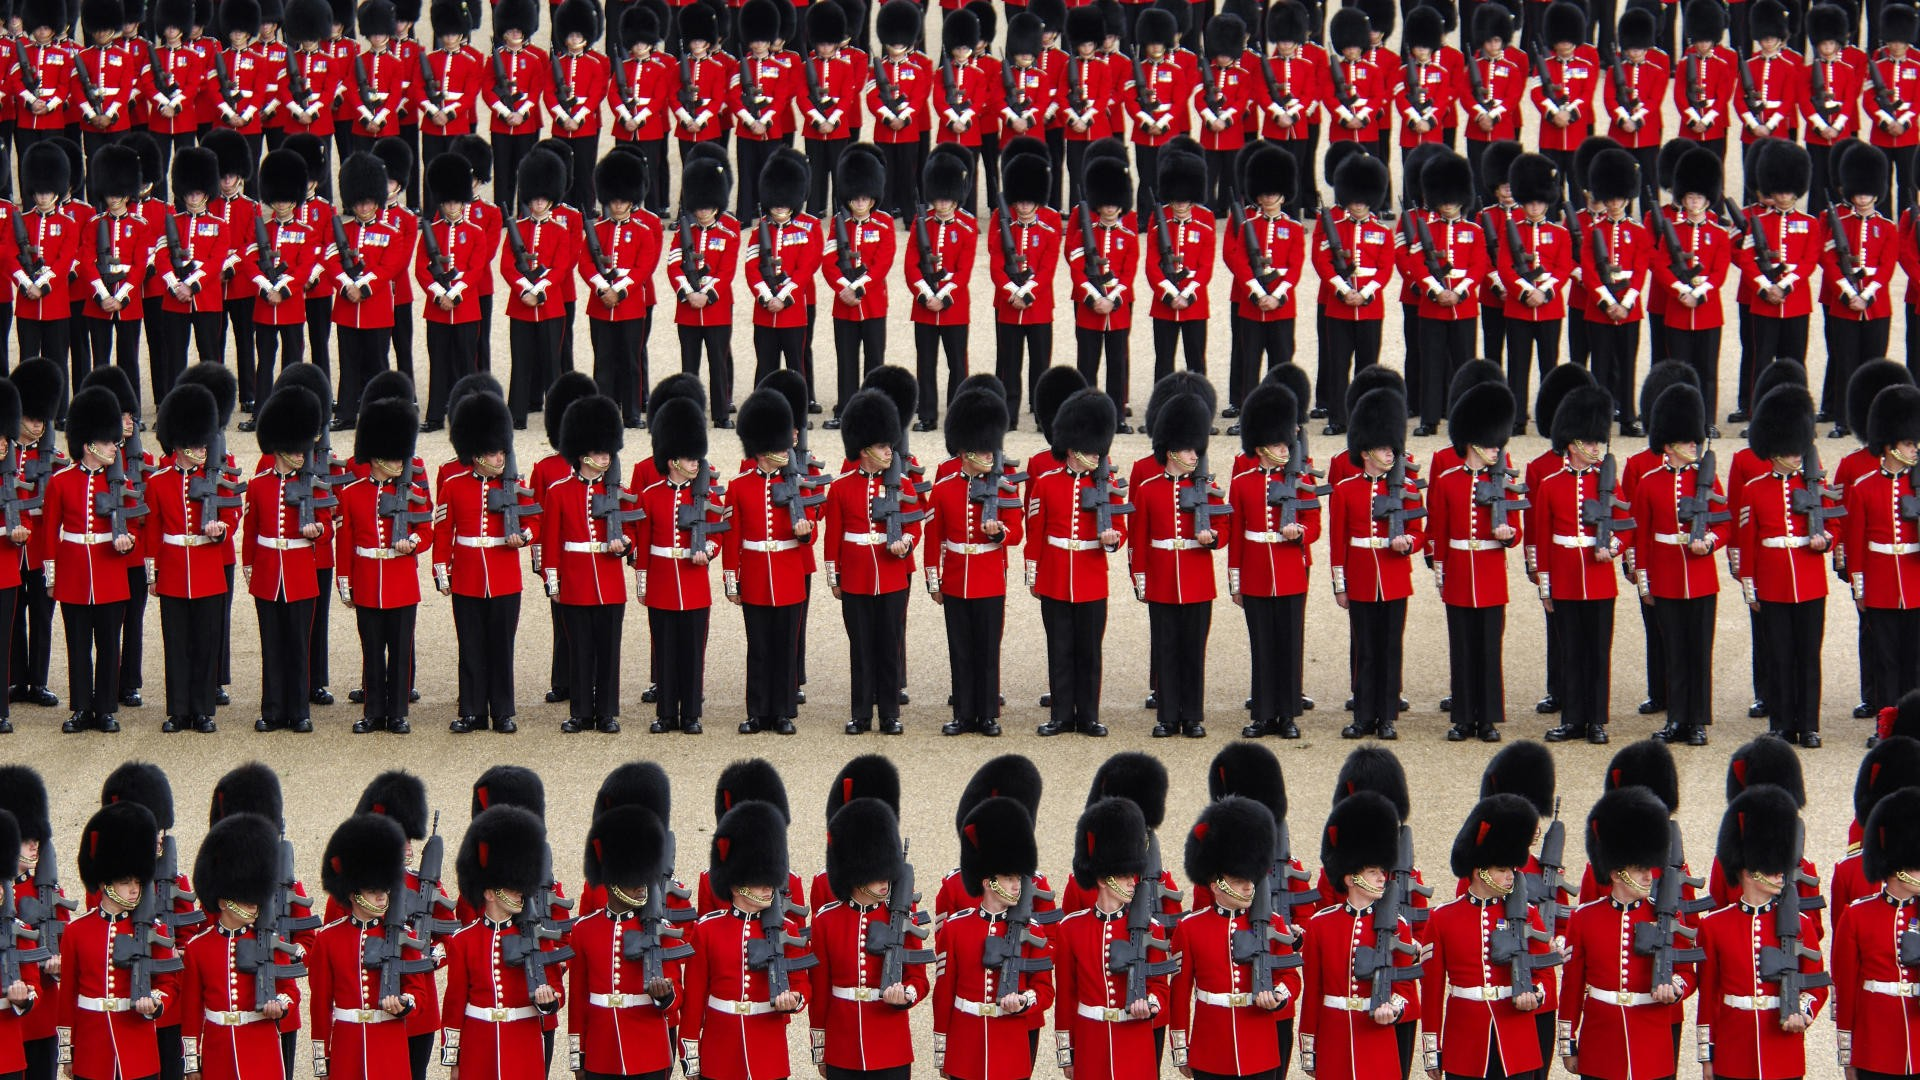 http://fwallpapers.com/files/images/red-coat-british-army.png ...